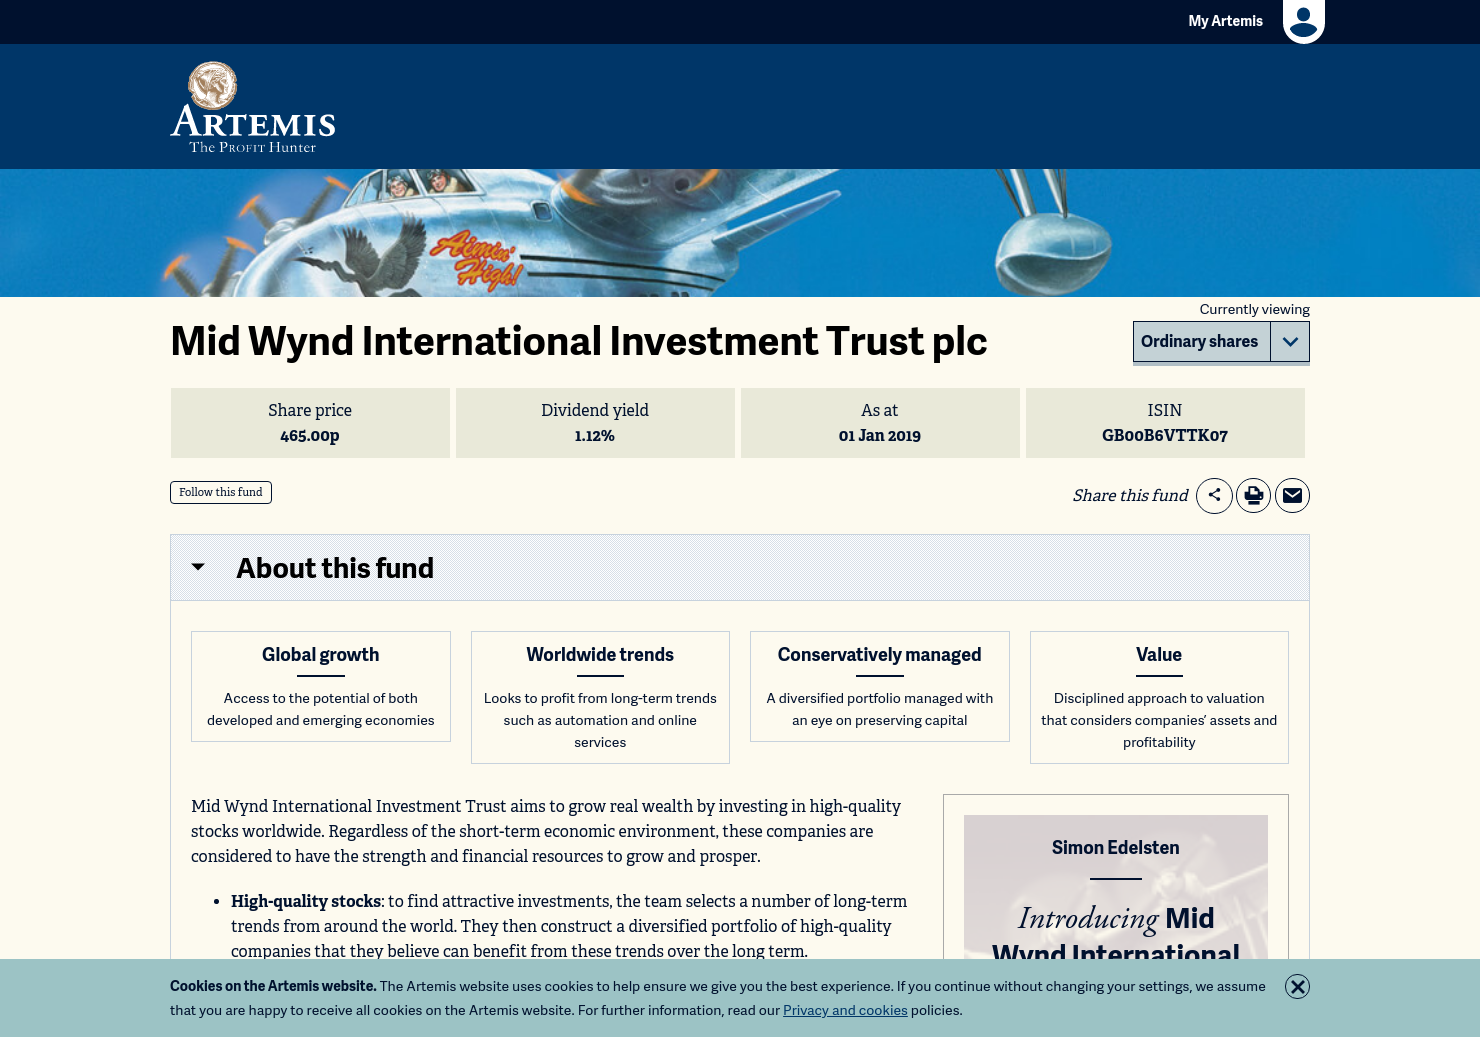 Mid Wynd International Investment Trust Home Page